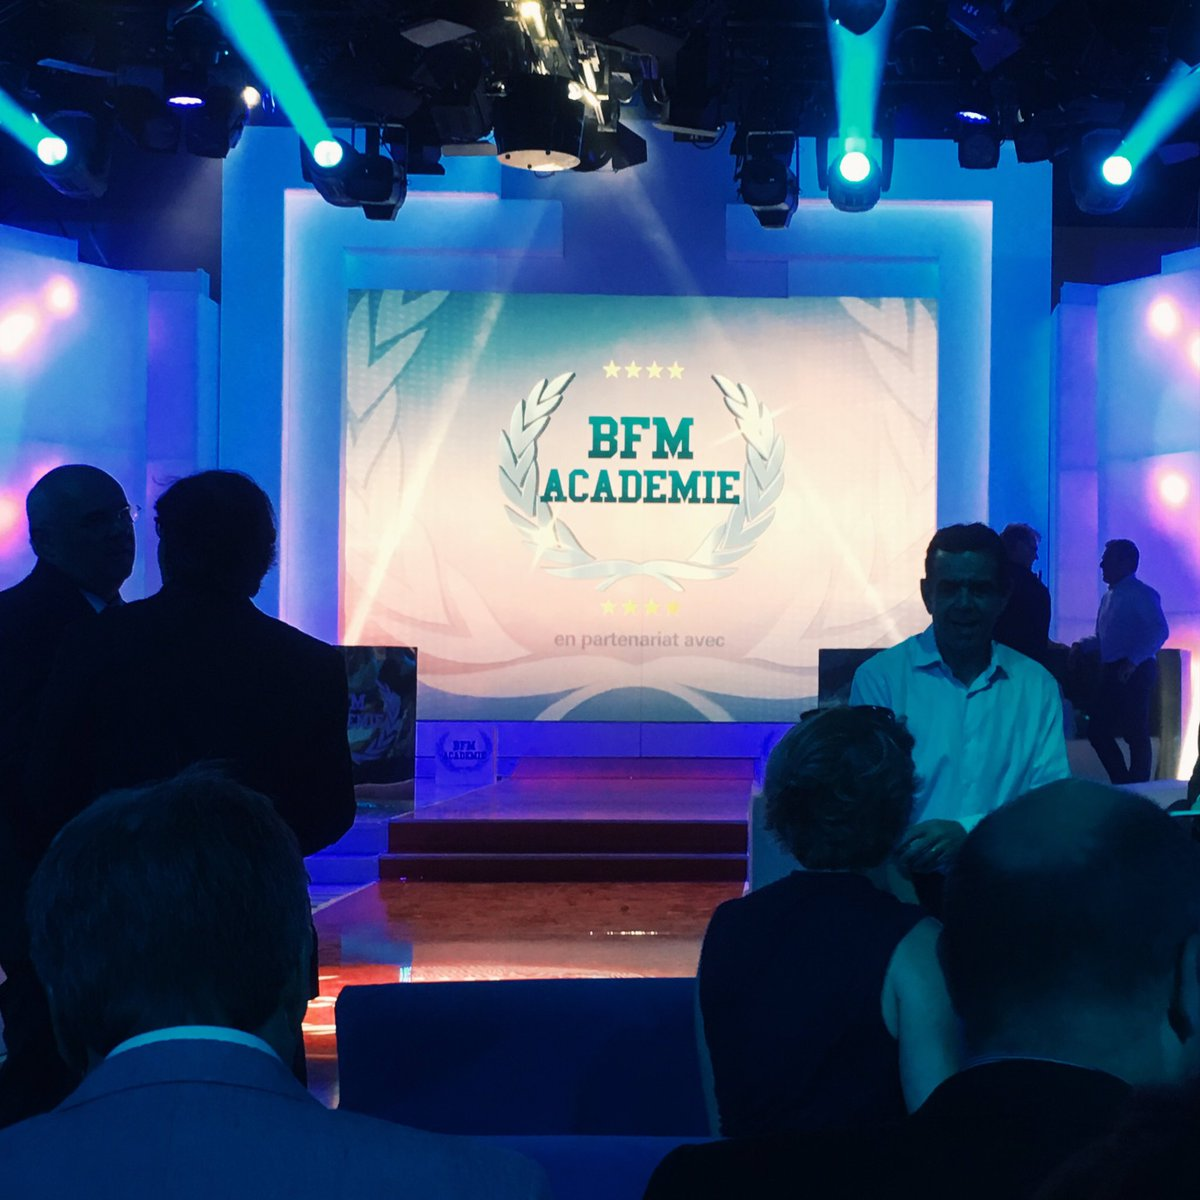 #BFMAcademie warm up...@StudioGabriel #BFM #lafinale<br>http://pic.twitter.com/Sf4LxwaWPK